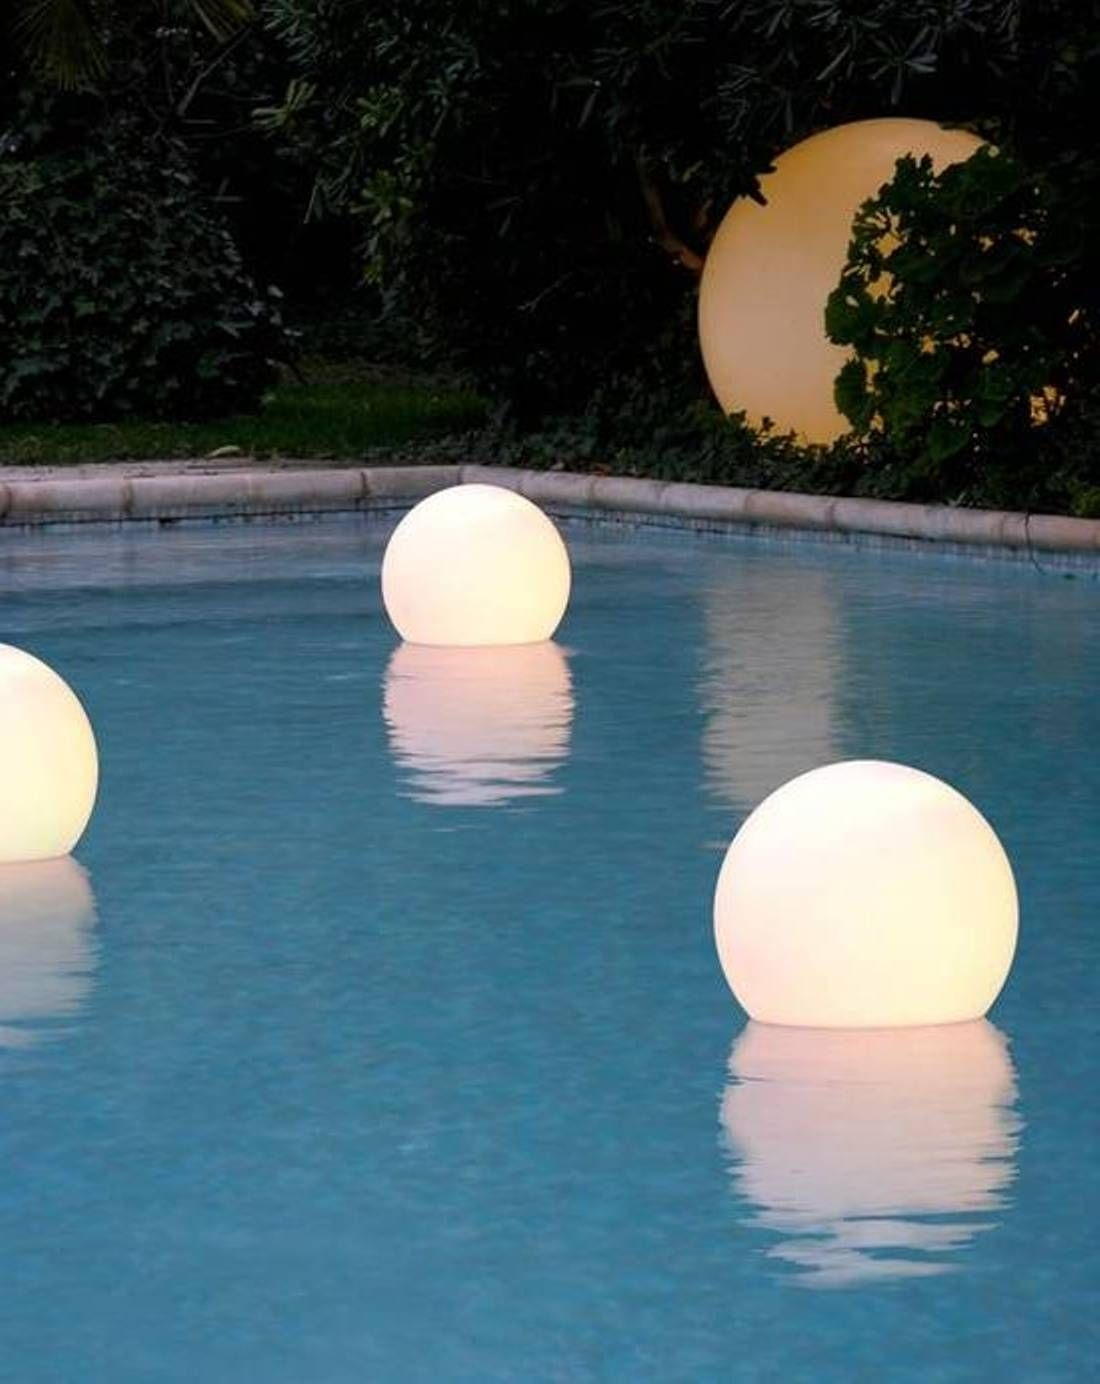 Floating Pool Lights For Inground Pools | Pool Ideas | Pinterest With Regard To Outdoor Lanterns For Poolside (View 4 of 20)